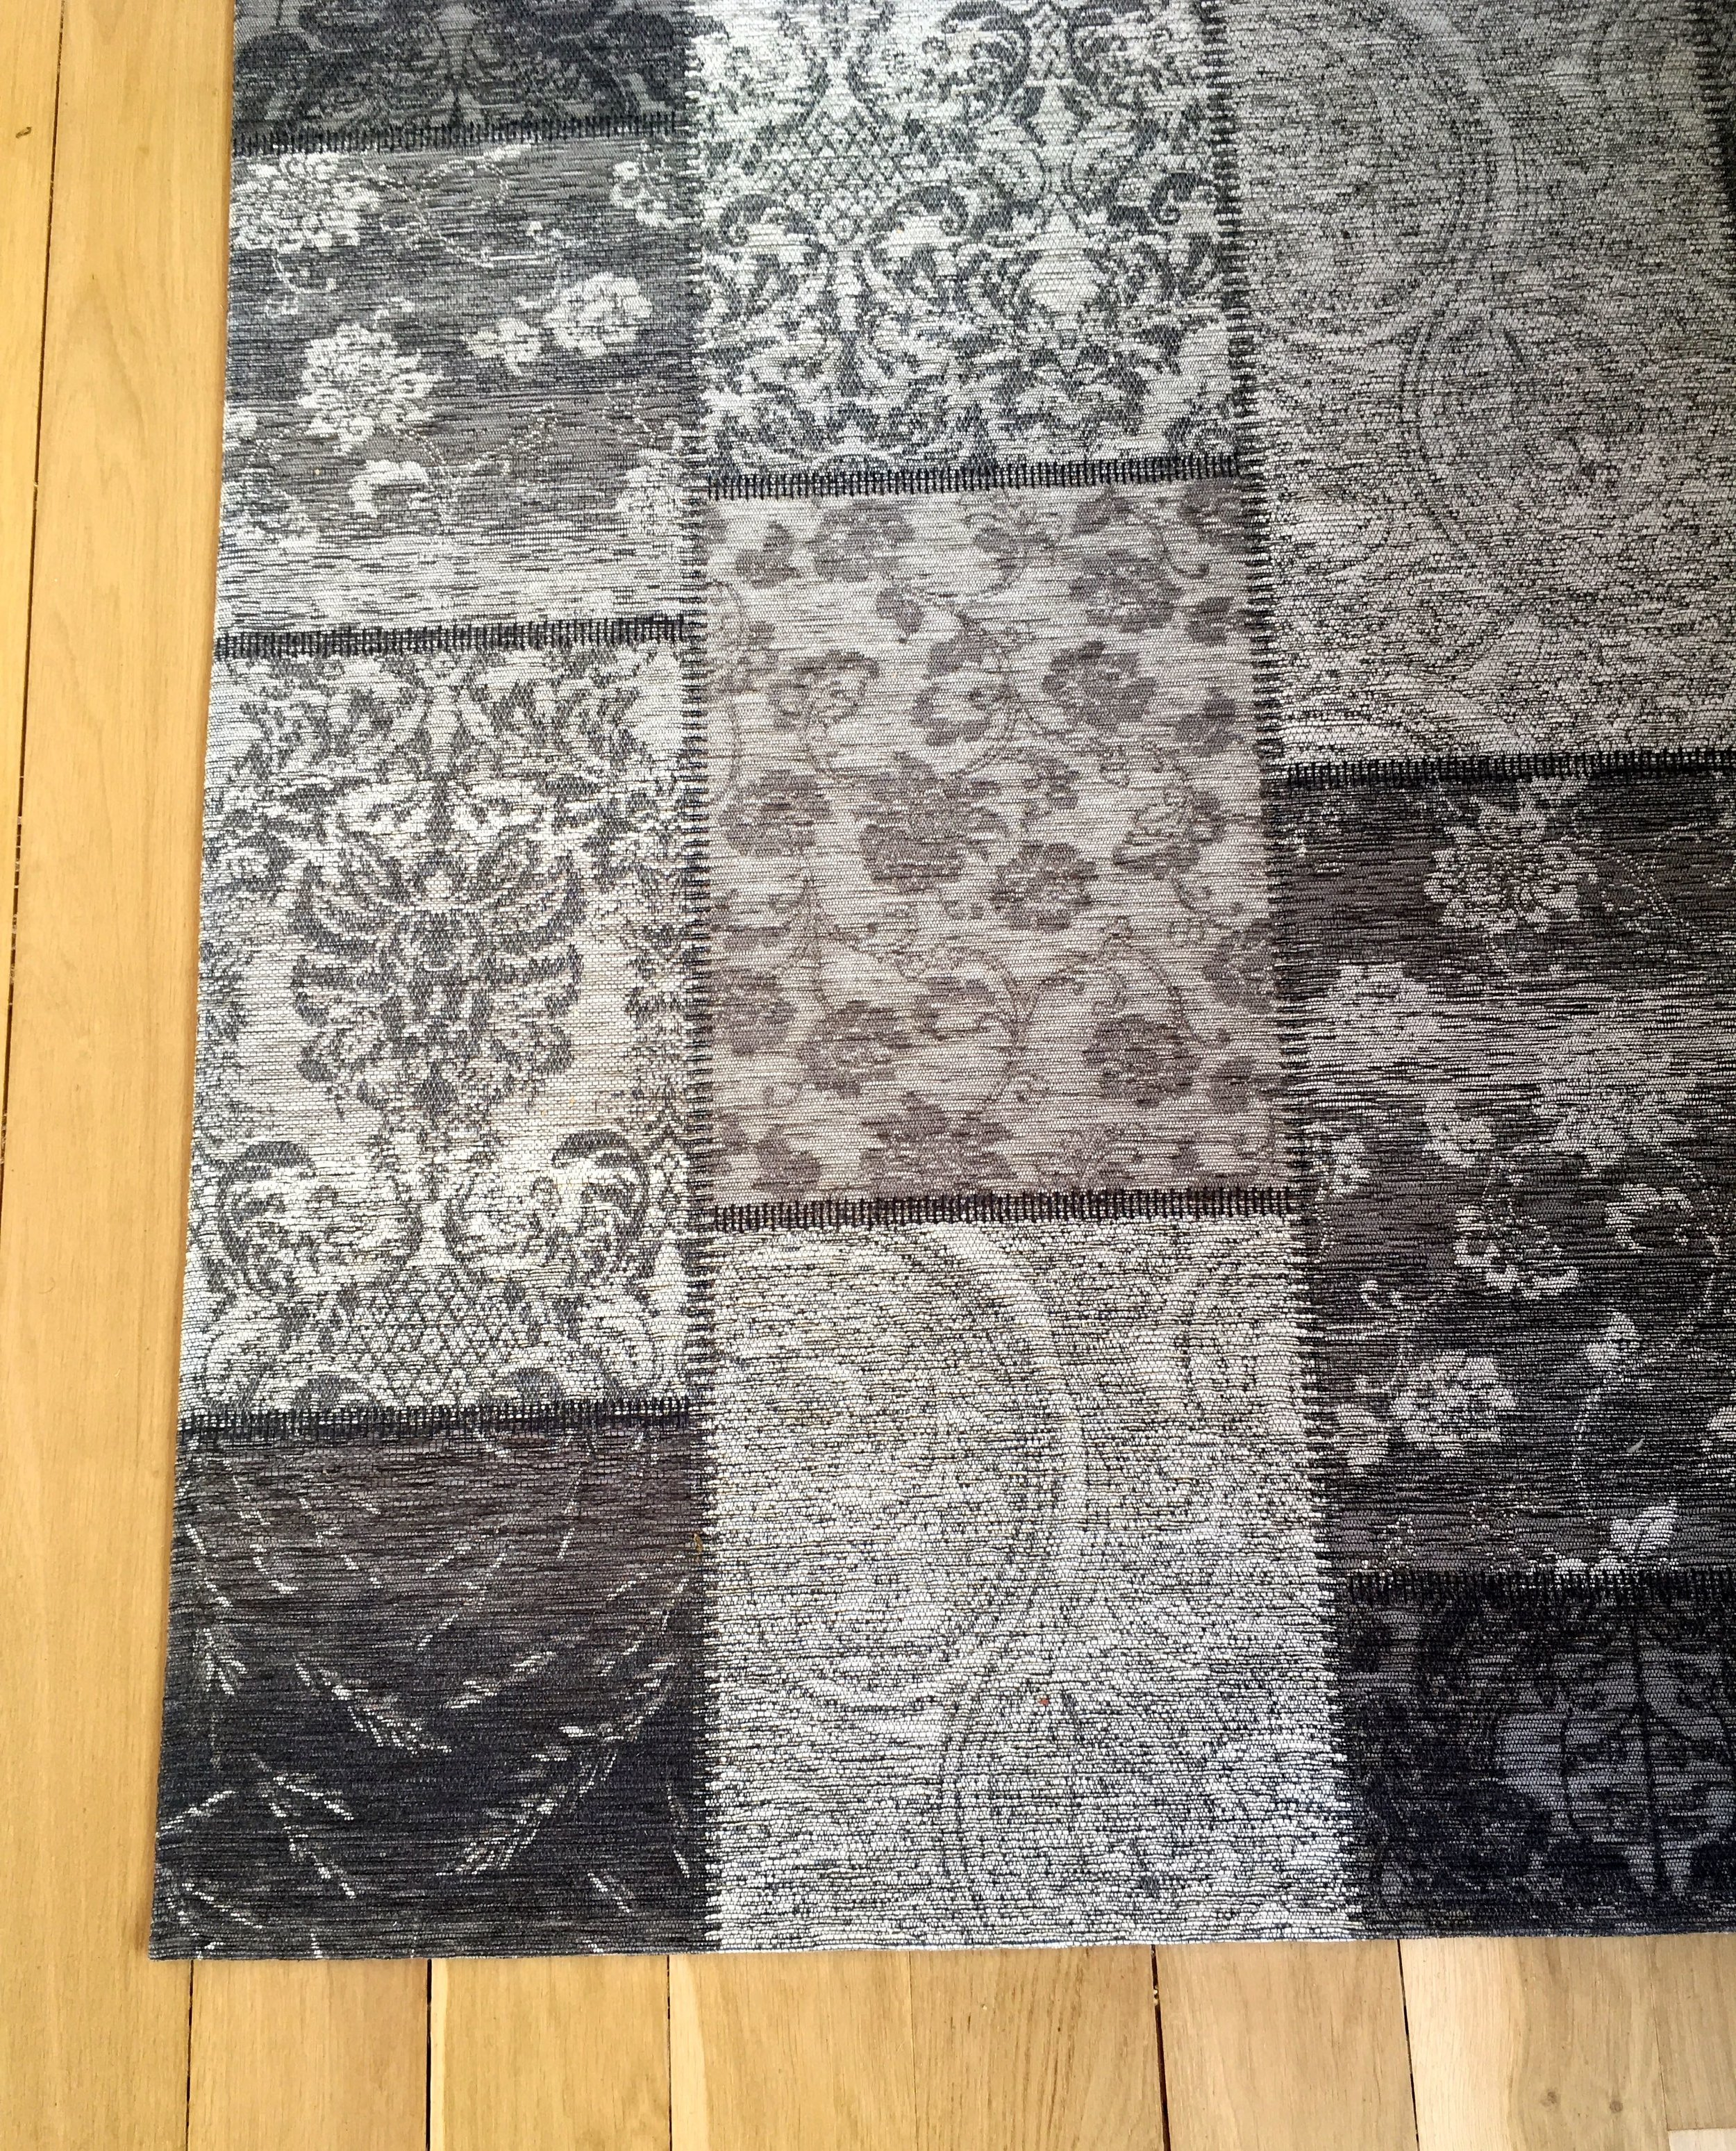 A closer look at the pattern of the rug